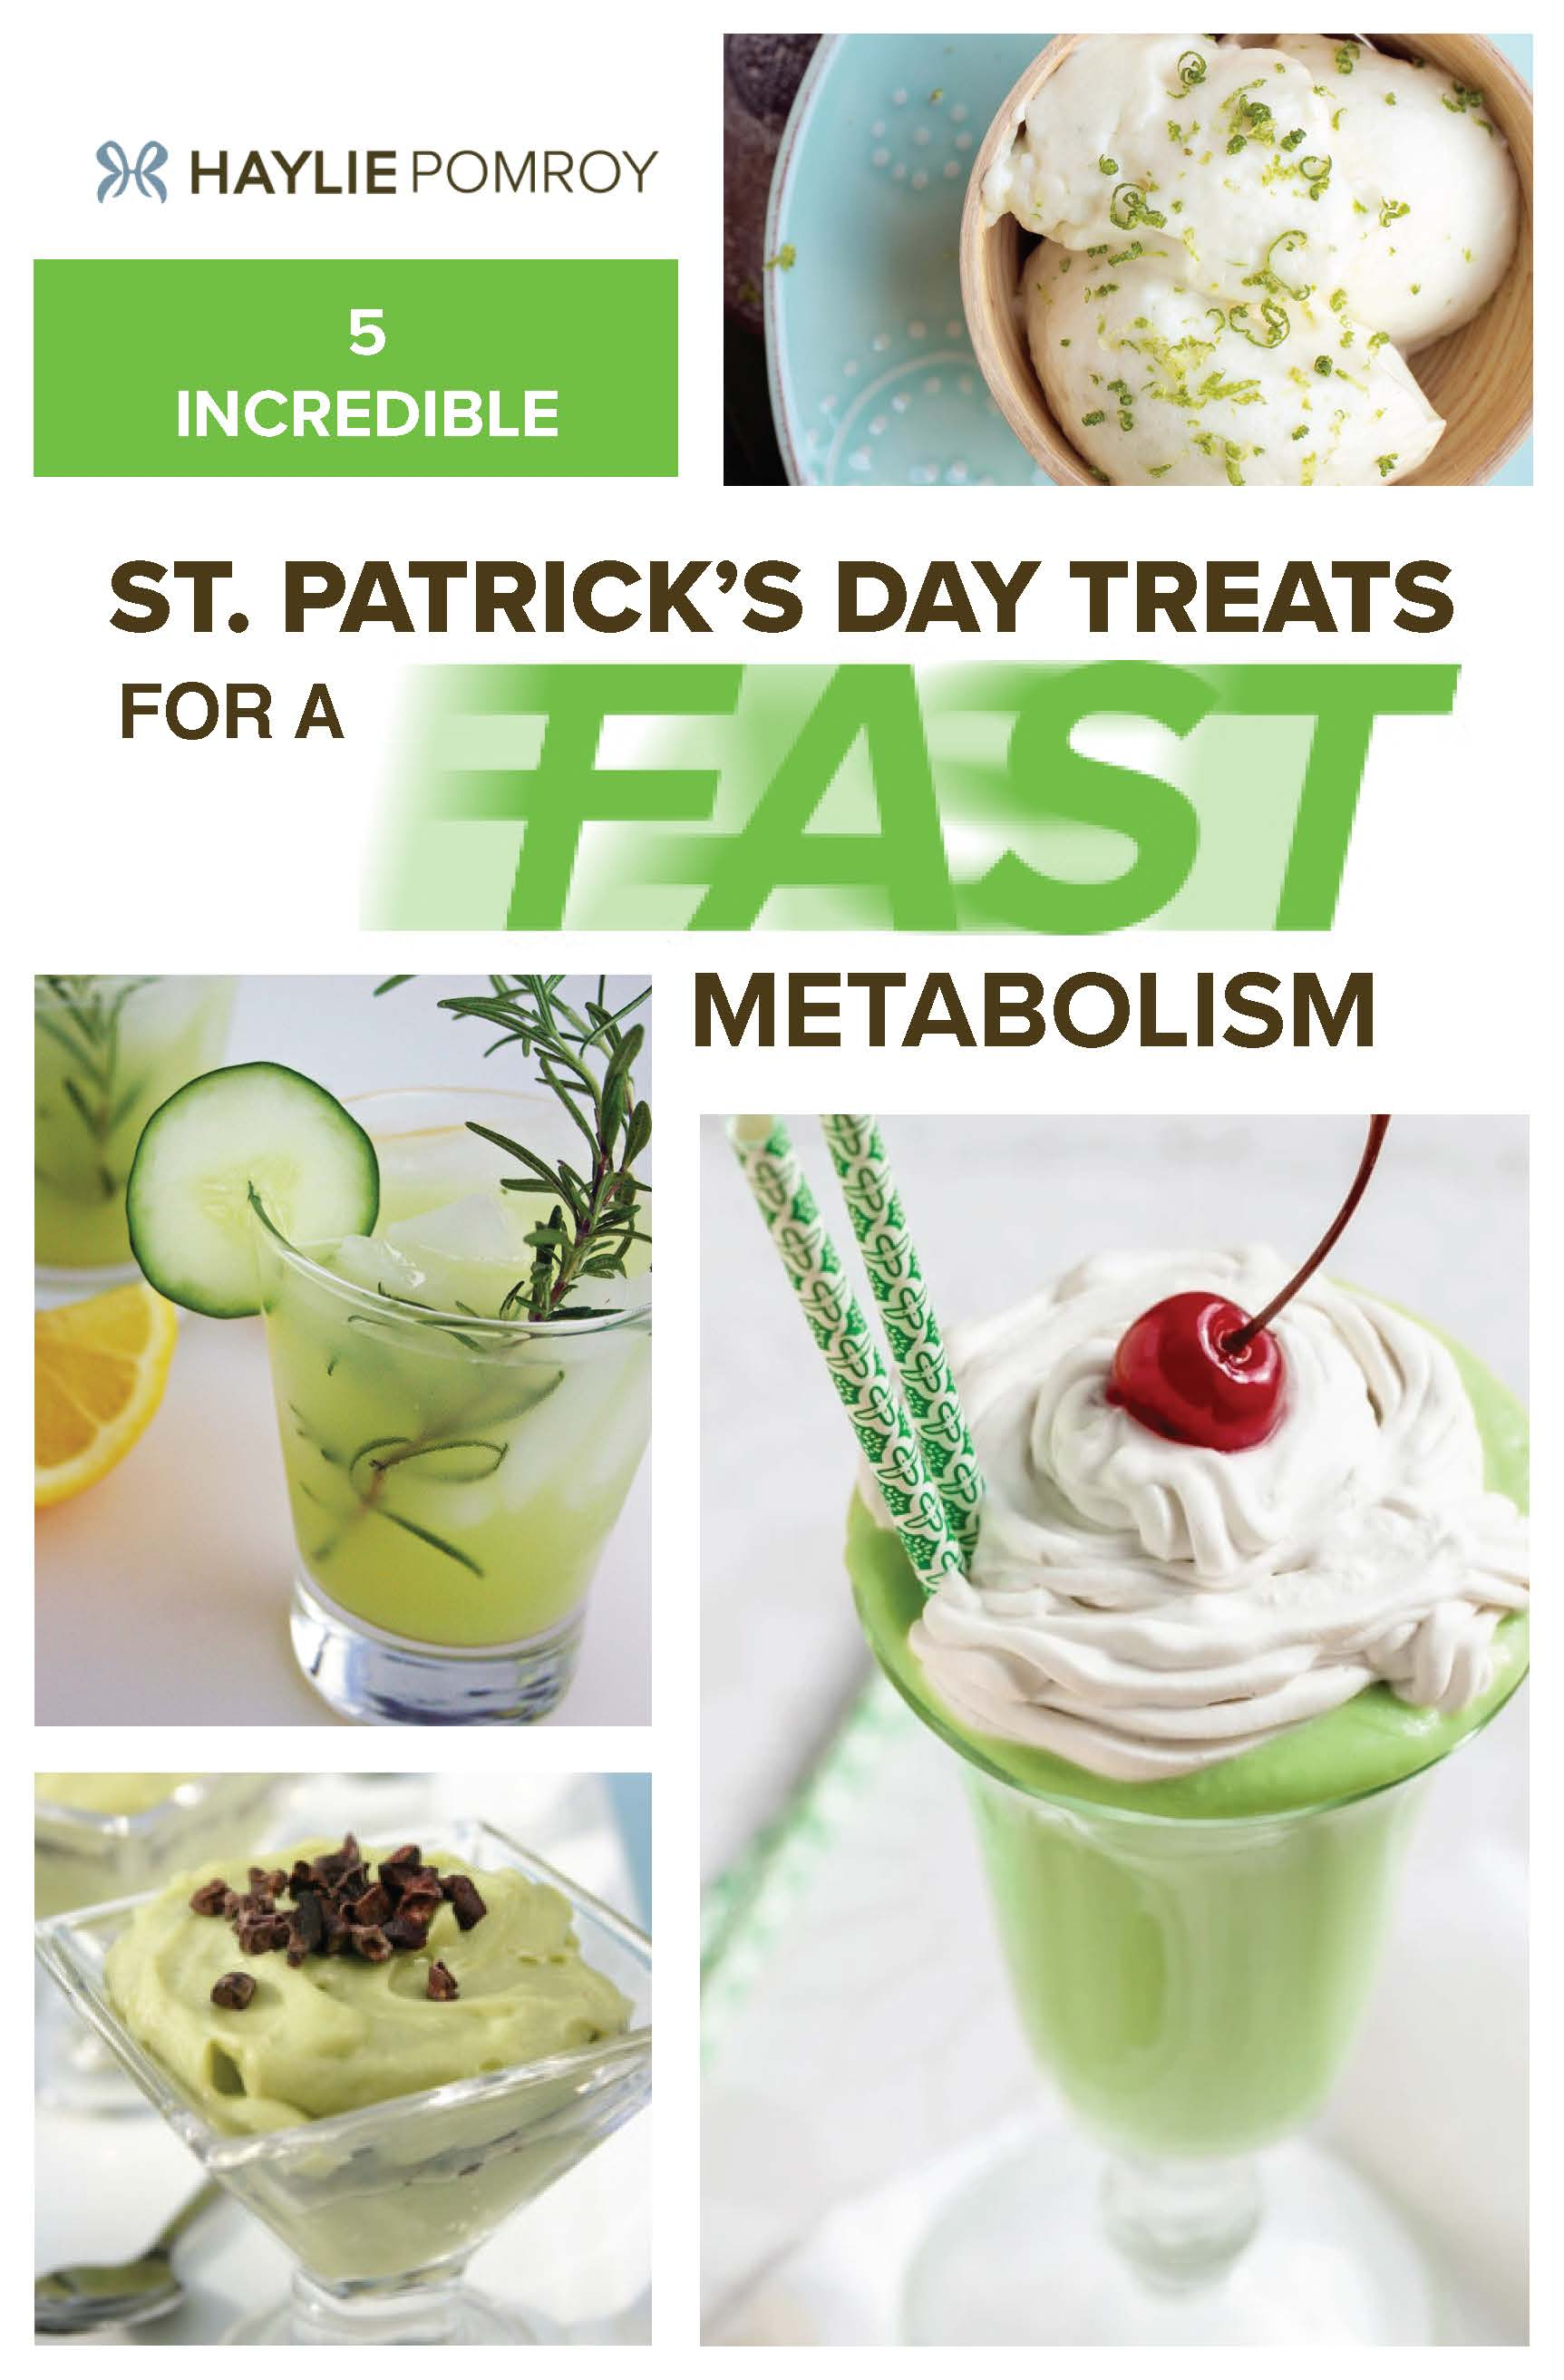 5 Incredible St. Patrick's Day Recipes for a Fast Metabolism